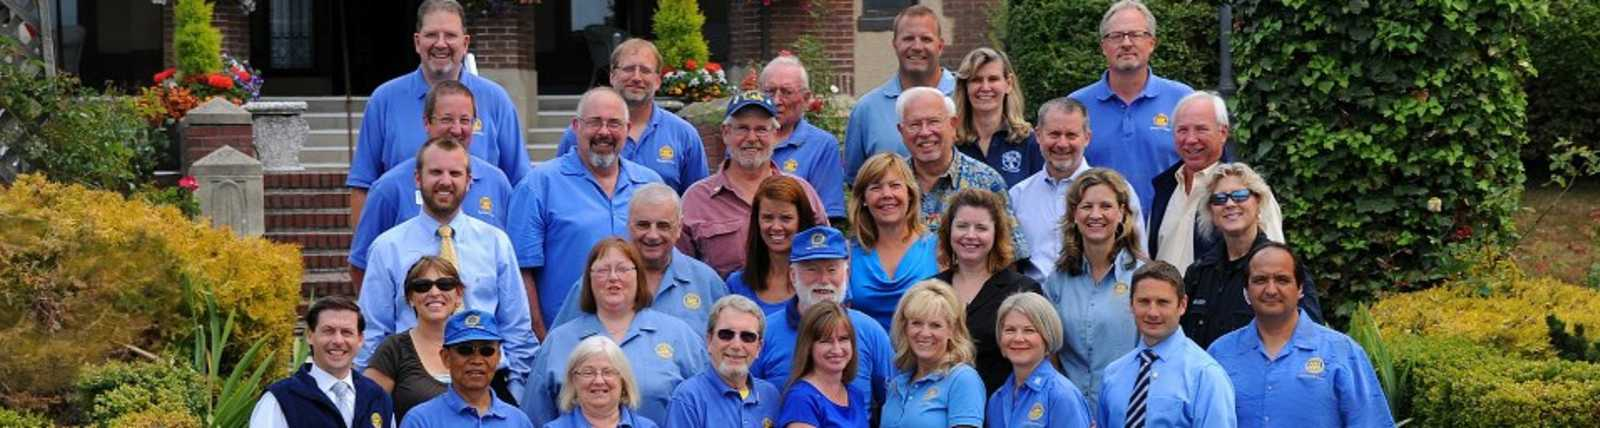 Rotary Club of Des Moines & Normandy Park